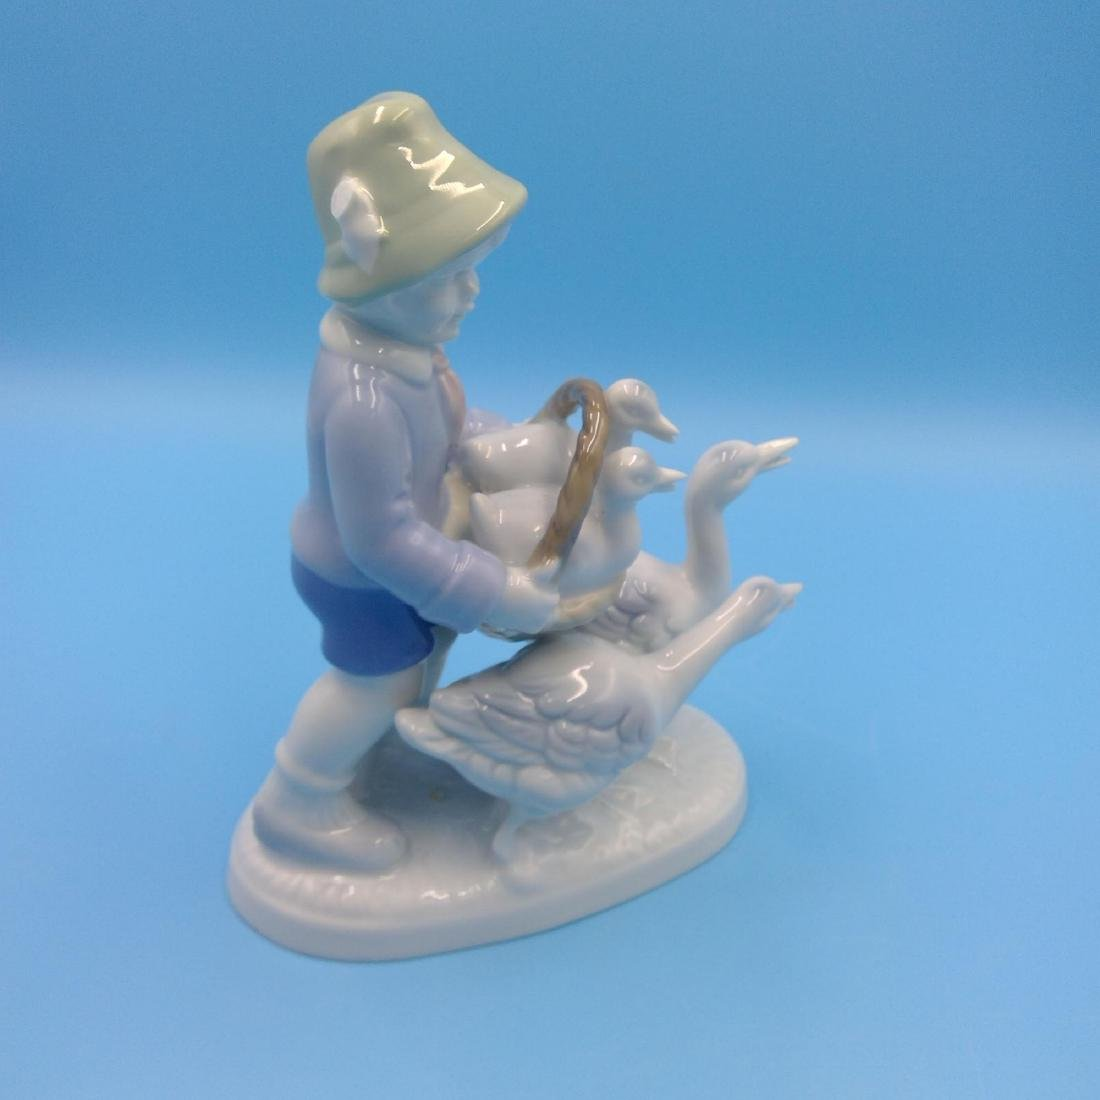 GROUP OF 6 GERMAN PORCELAIN FIGURINES - 5